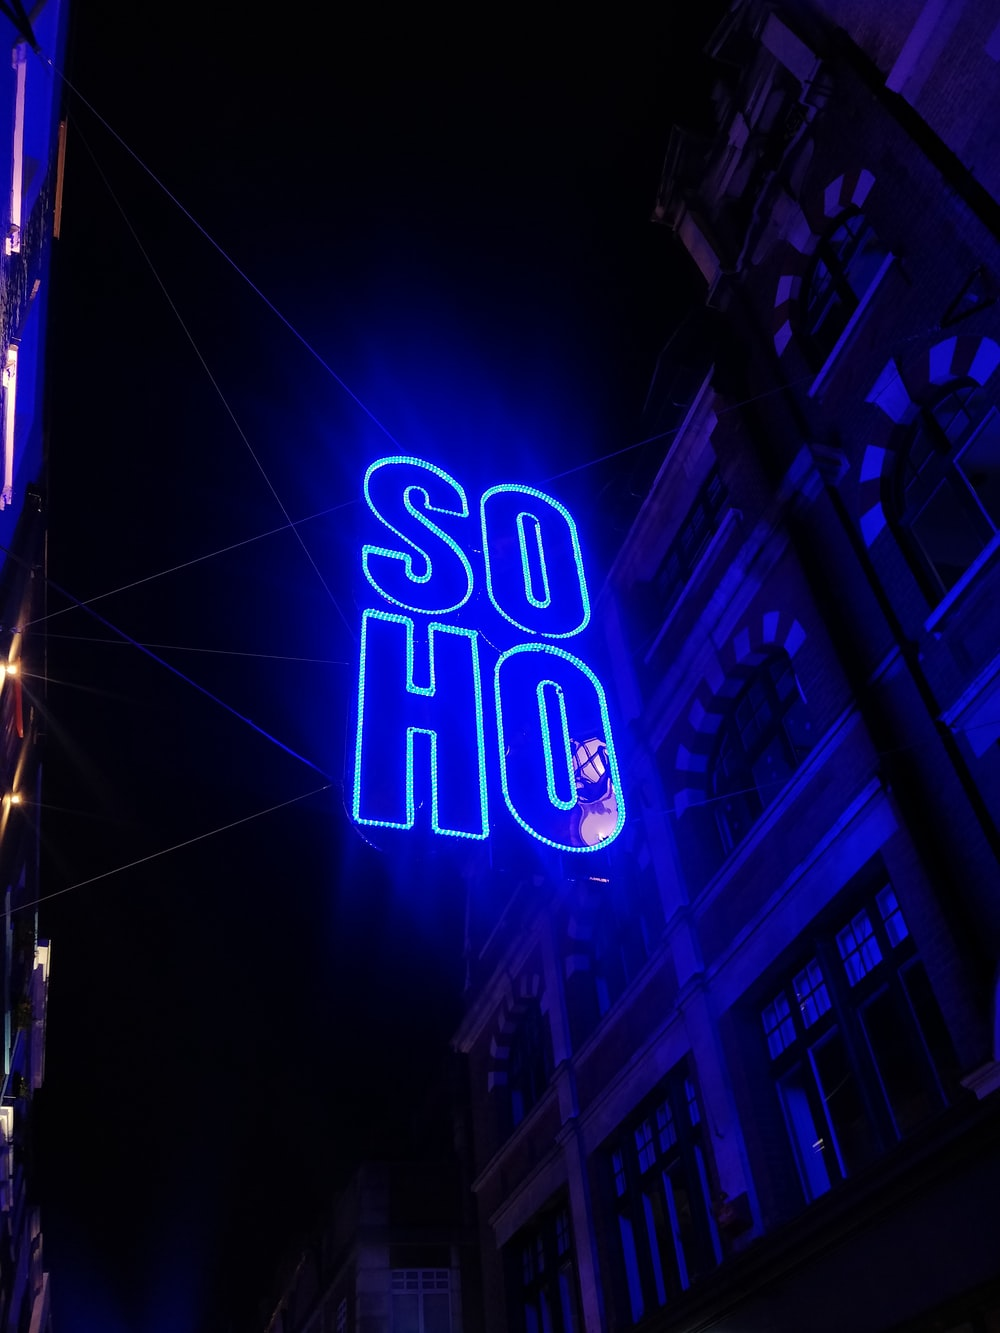 blue Soho LED sign outside building during night time